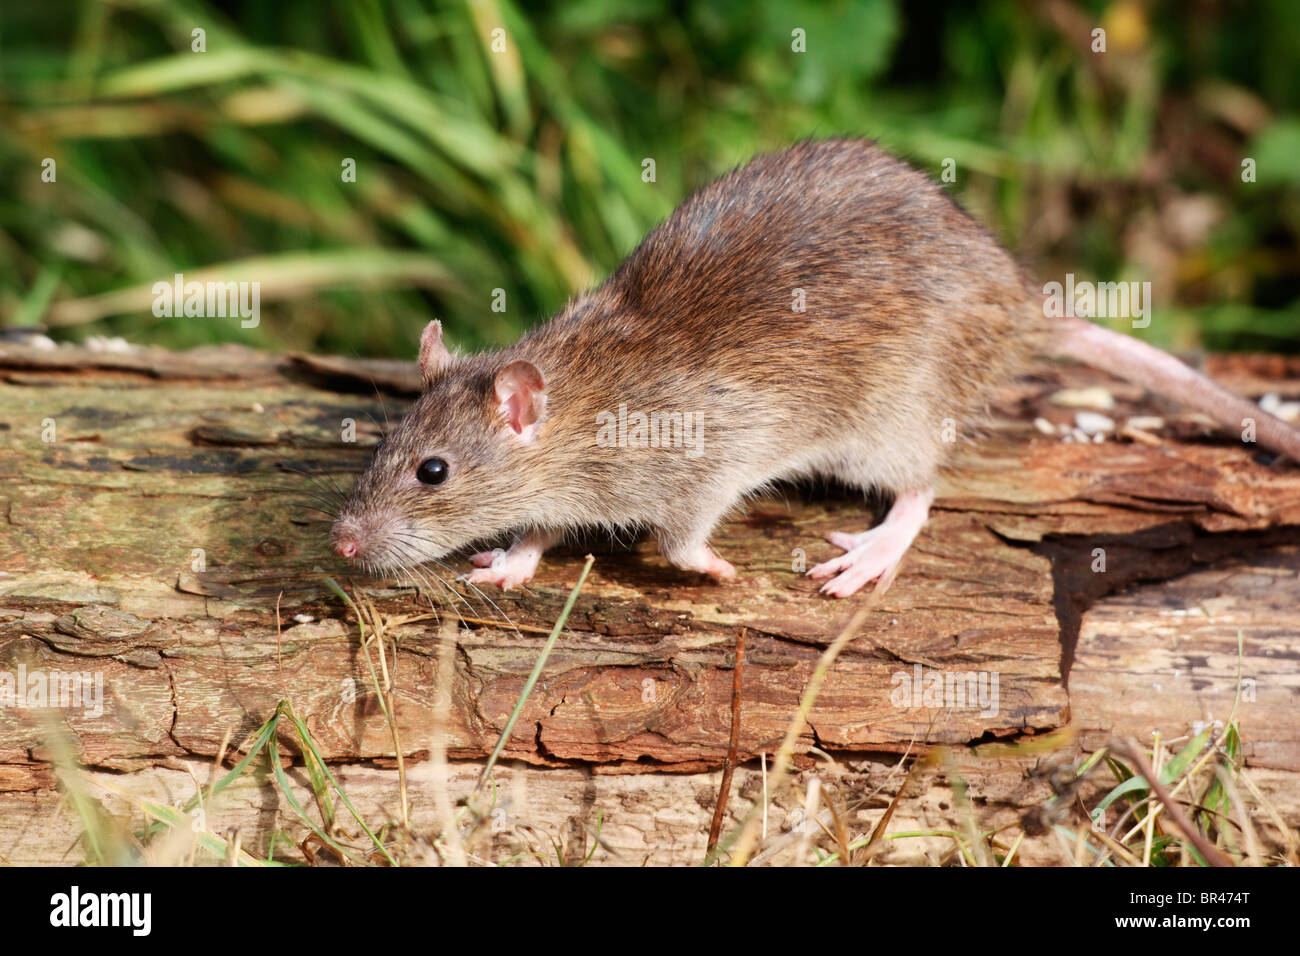 Brown rat, Rattus norvegicus, single animal on log, Midlands, September 2010 - Stock Image